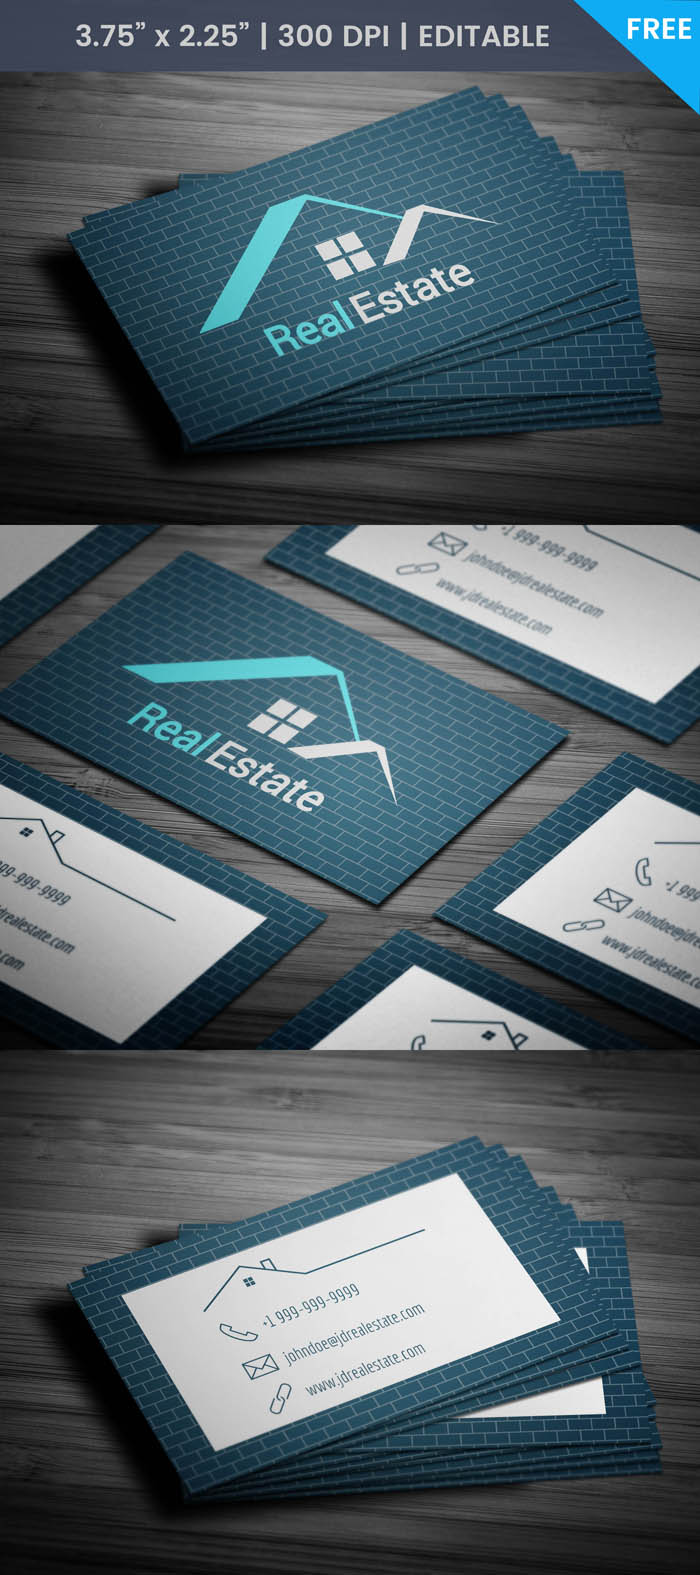 Free Real Estate Appraisal Business Card Template